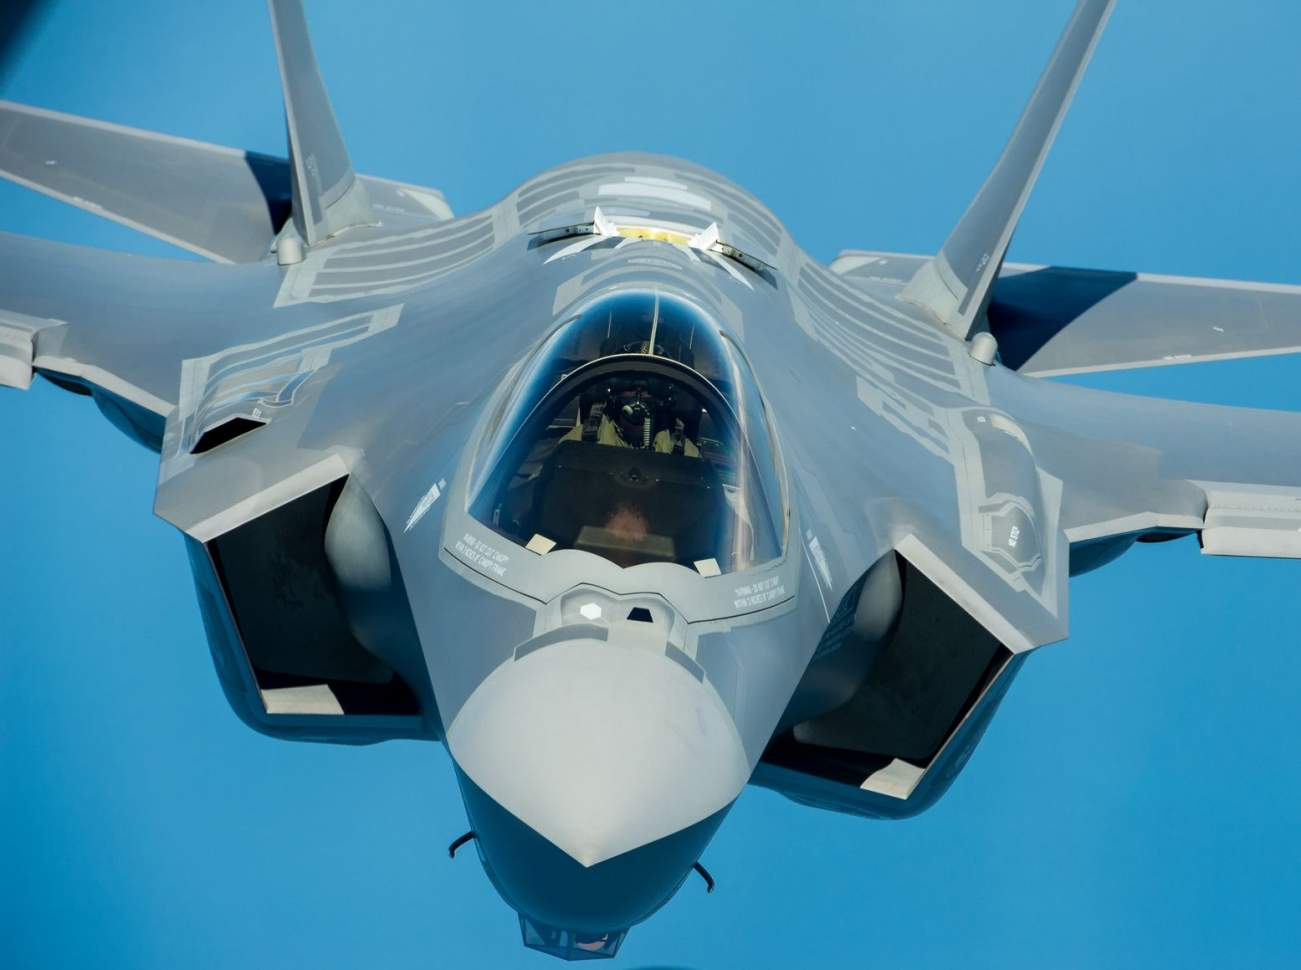 Could Japan Build the Ultimate 6th Generation Stealth Fighter (Better than F-35)?